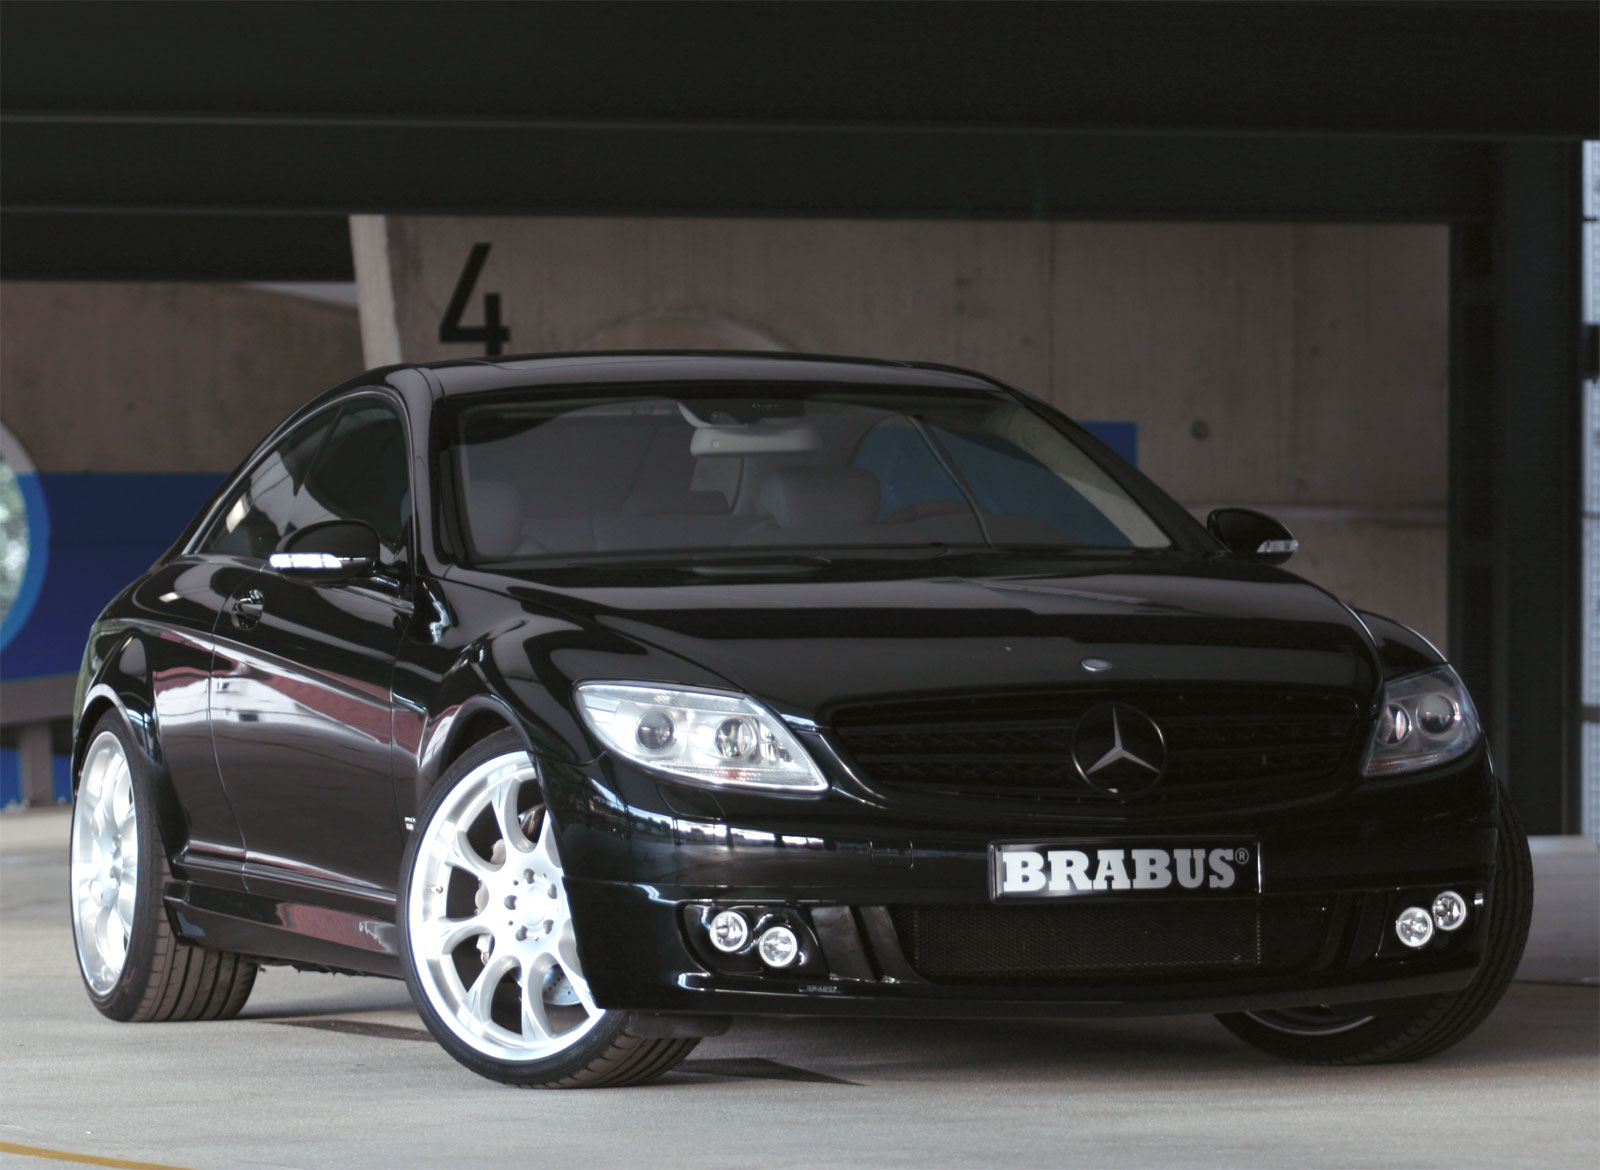 2006 brabus t13 cl 600 history pictures value auction sales research and news. Black Bedroom Furniture Sets. Home Design Ideas